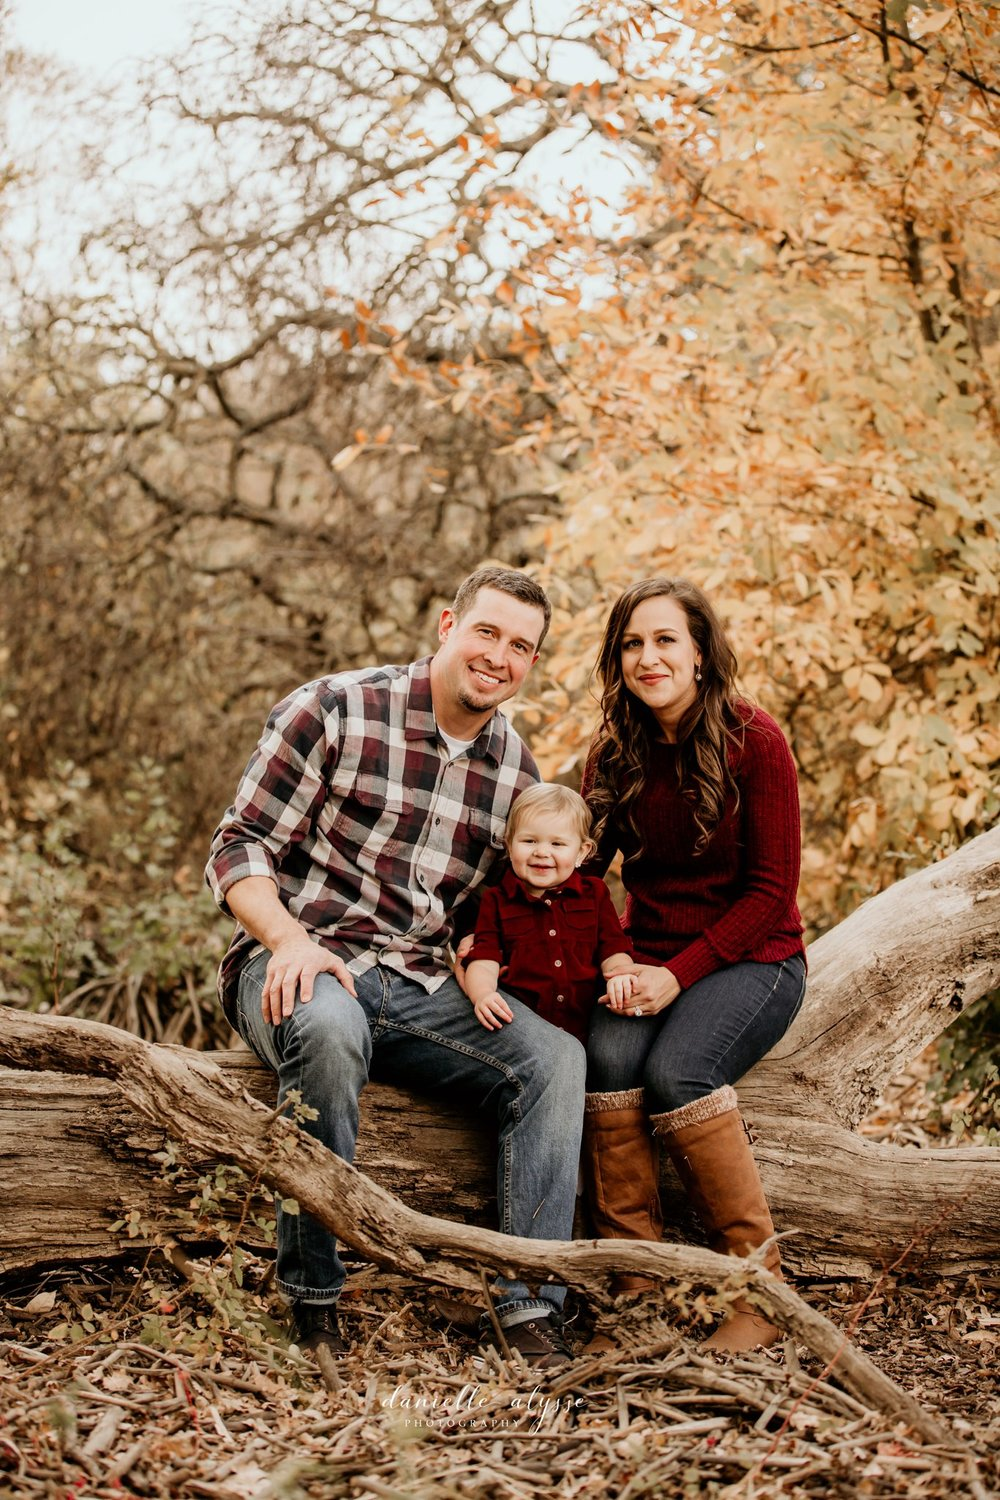 181119_fall_family_portrait_cosumnes_river_preserve_angie_danielle_alysse_photography_18_WEB.jpg